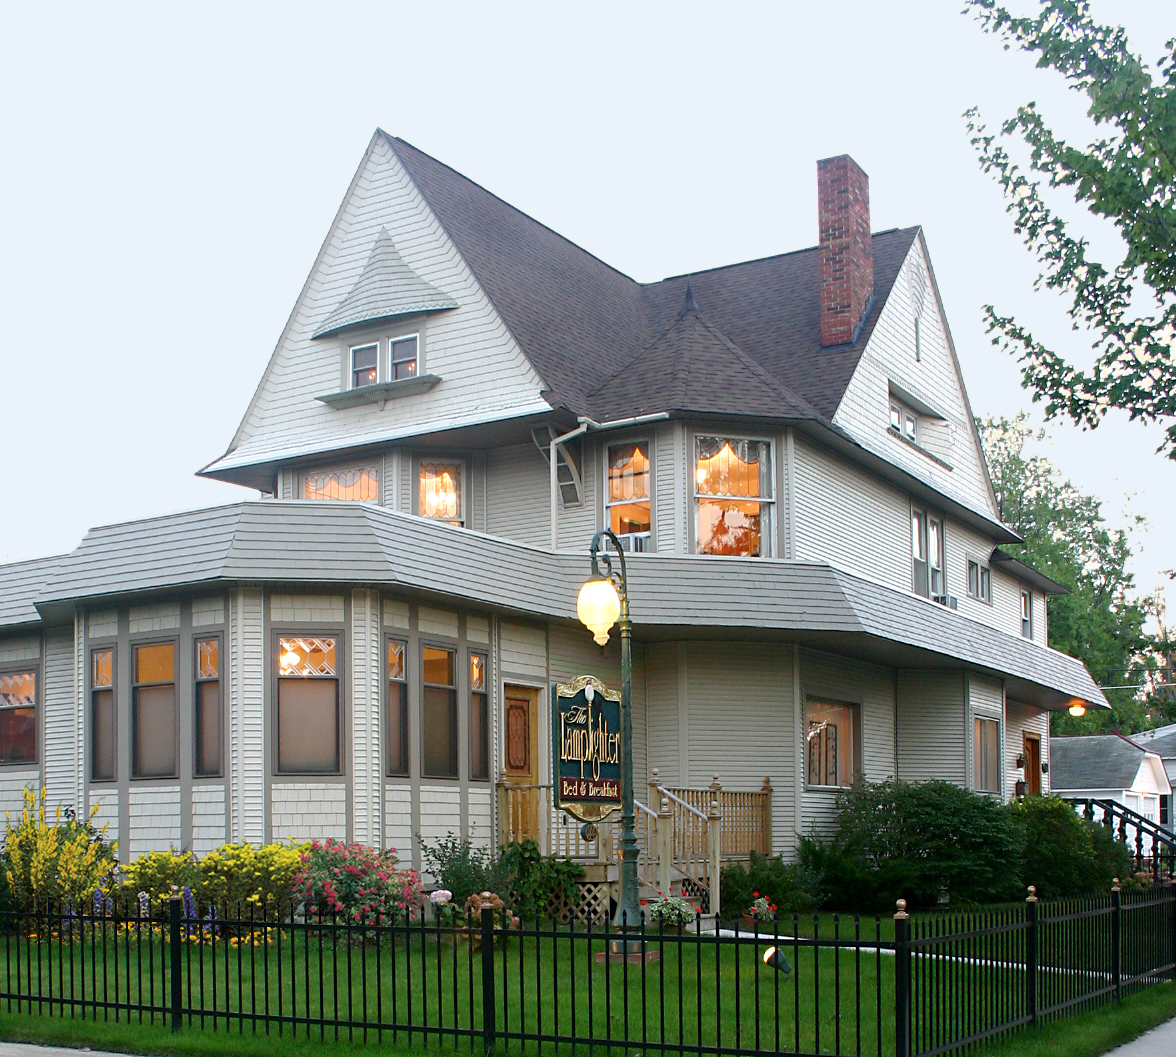 Lamplighter Bed & Breakfast, The